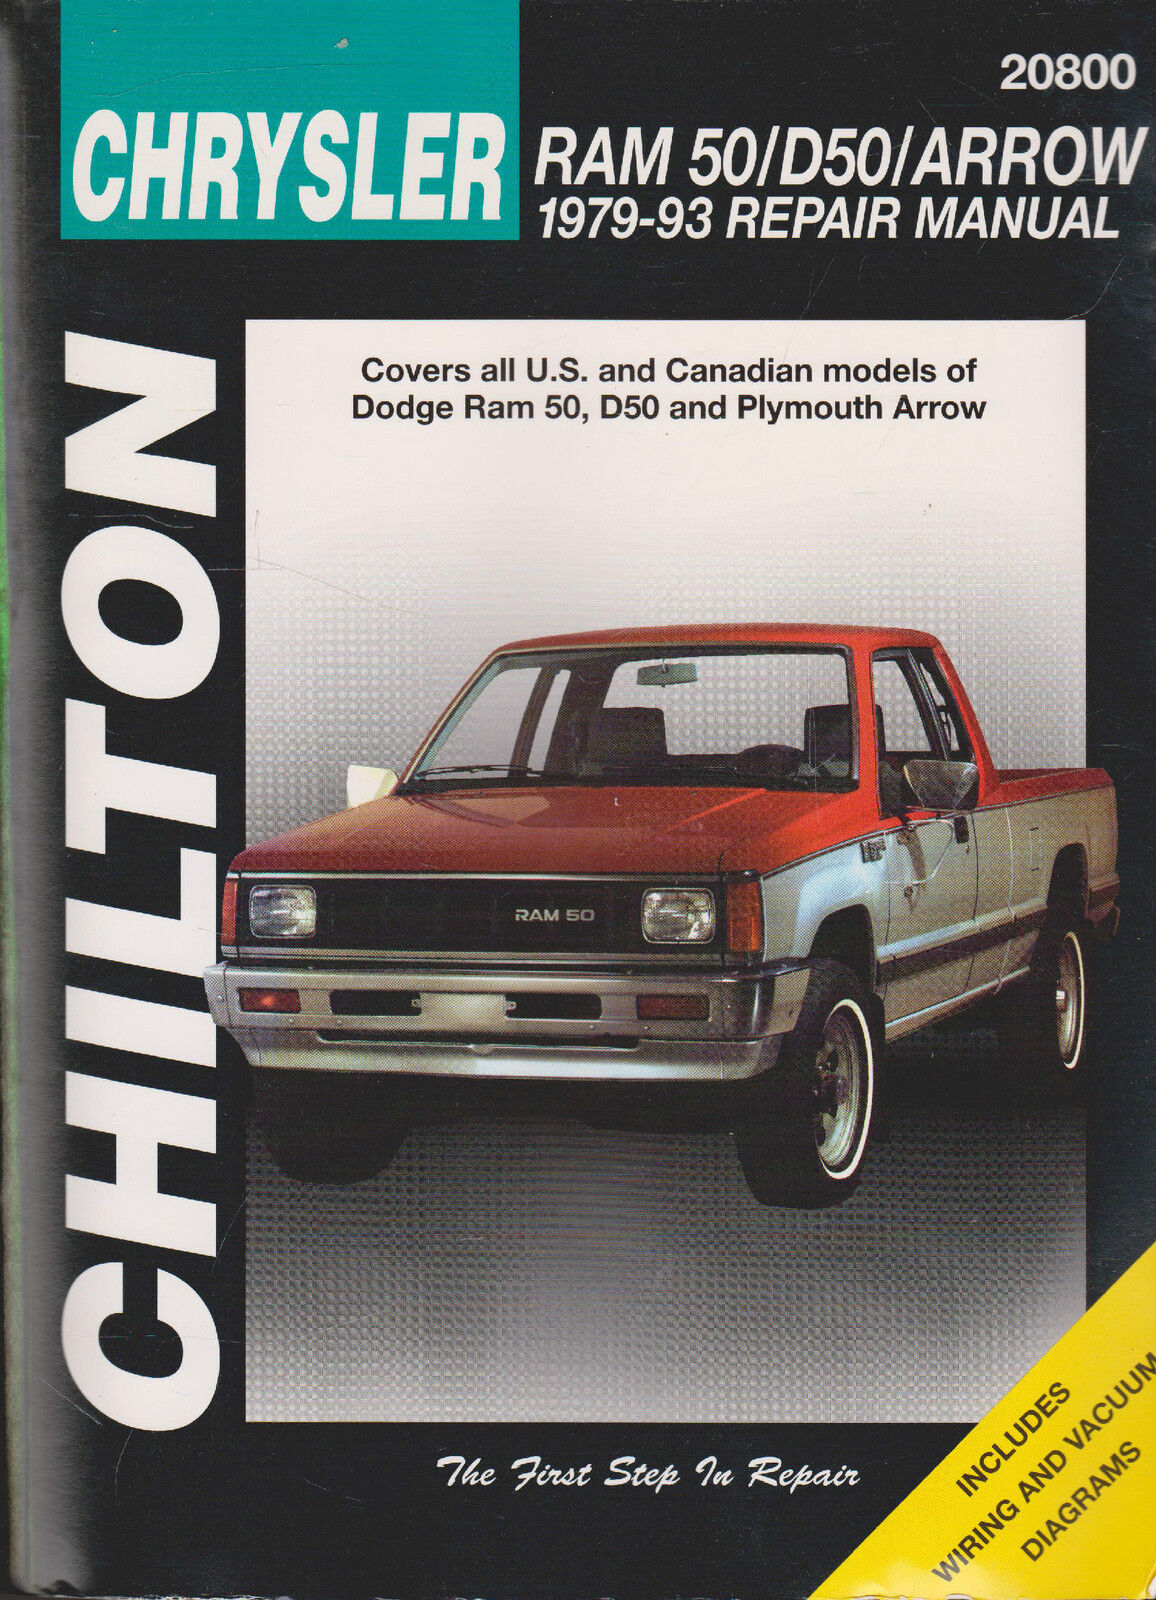 Total Car Care Repair Manuals: Dodge Ram 50, D50, and Arrow, 1979-93 by  Chilton Automotive Editorial Staff (1998, Paperback) | eBay